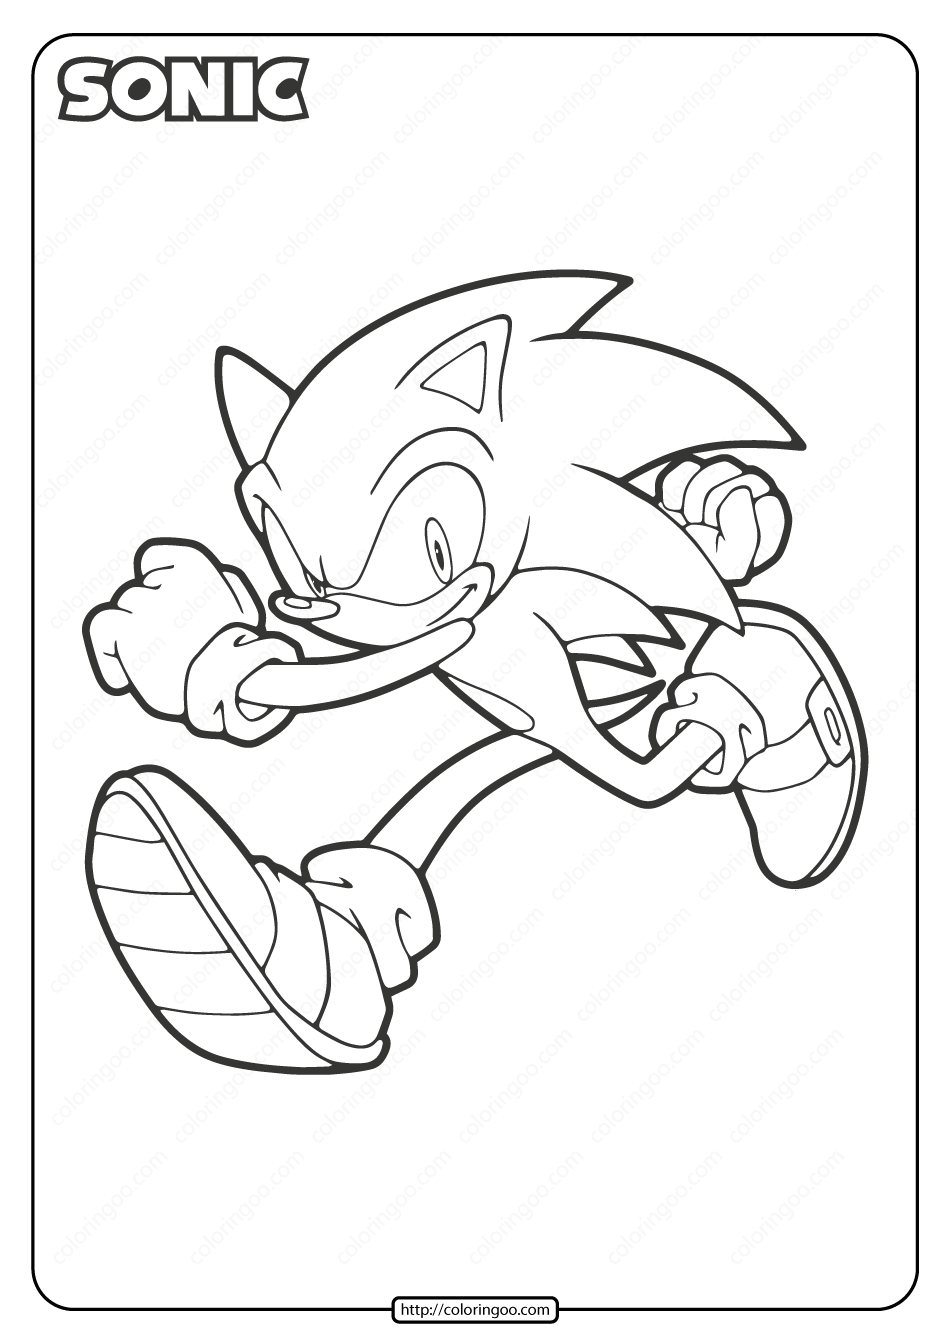 Free Printable Sonic The Hedgehog Coloring Page